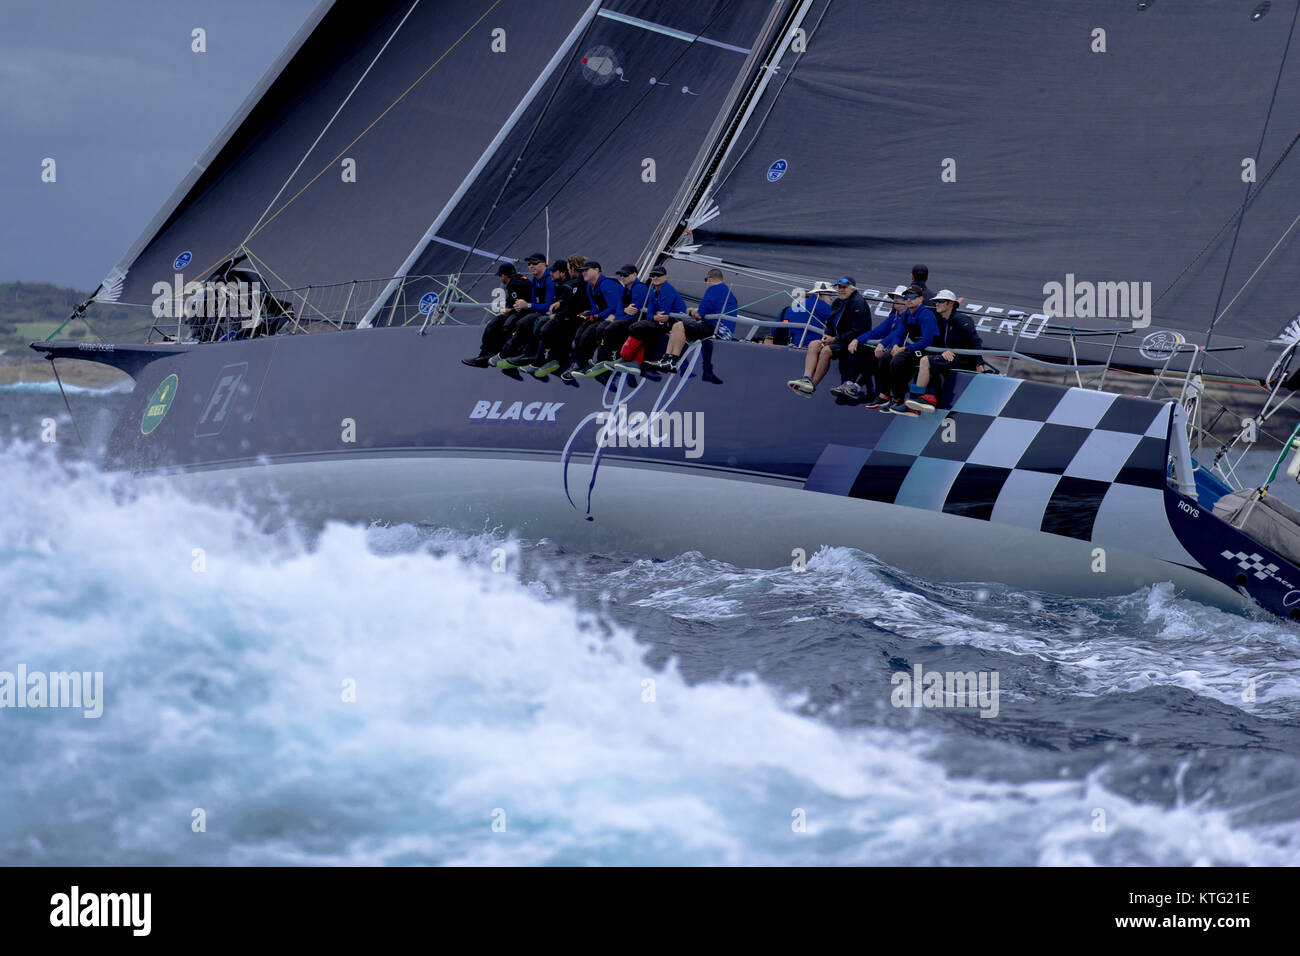 Sydney, Australia. 26th December 2017. Rolex Sydney to Hobart Yacht Race 2017. Black Jack was first out of the heads. - Stock Image